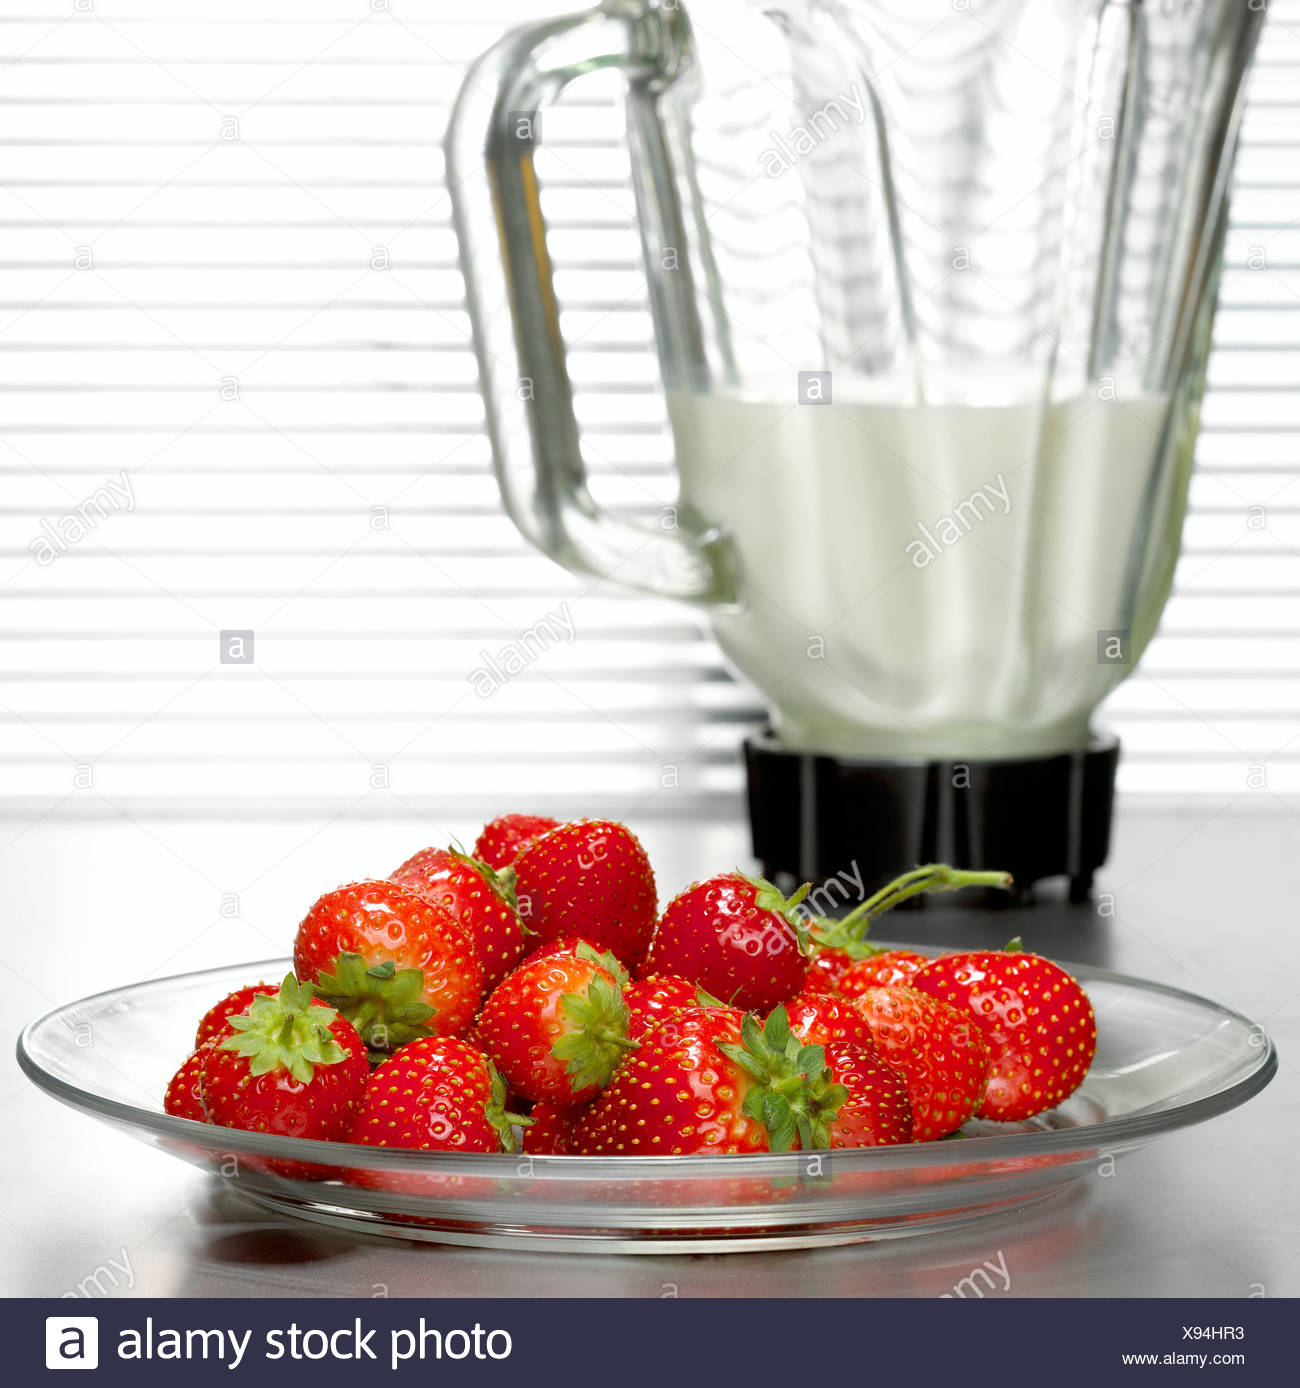 Strawberries in front of mixer, close-up - Stock Image